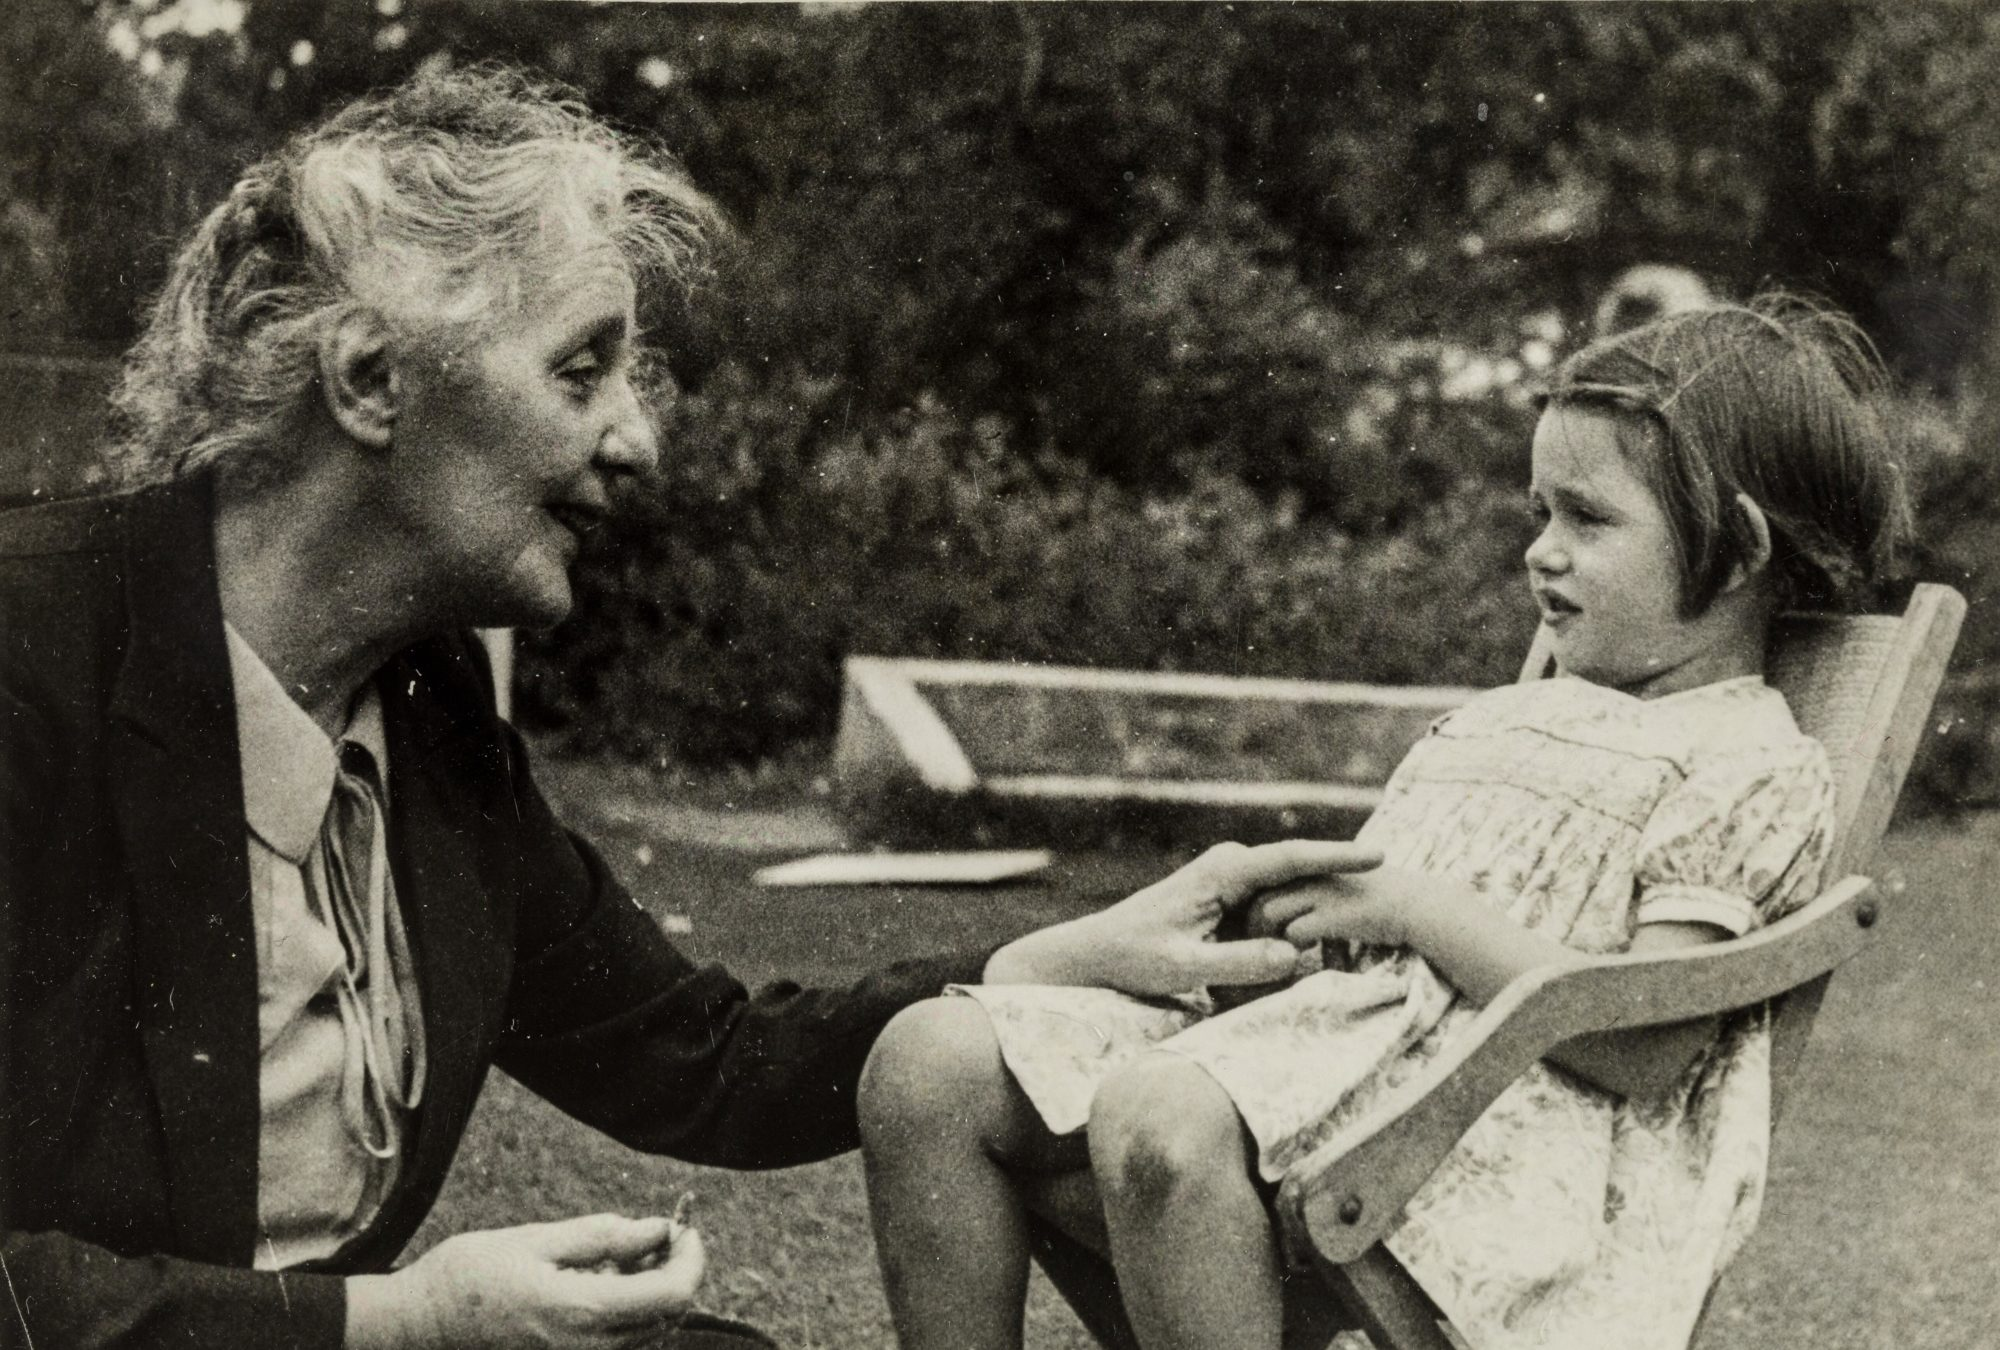 Photograph of Melanie Klein with her granddaughter Diana, around 1945